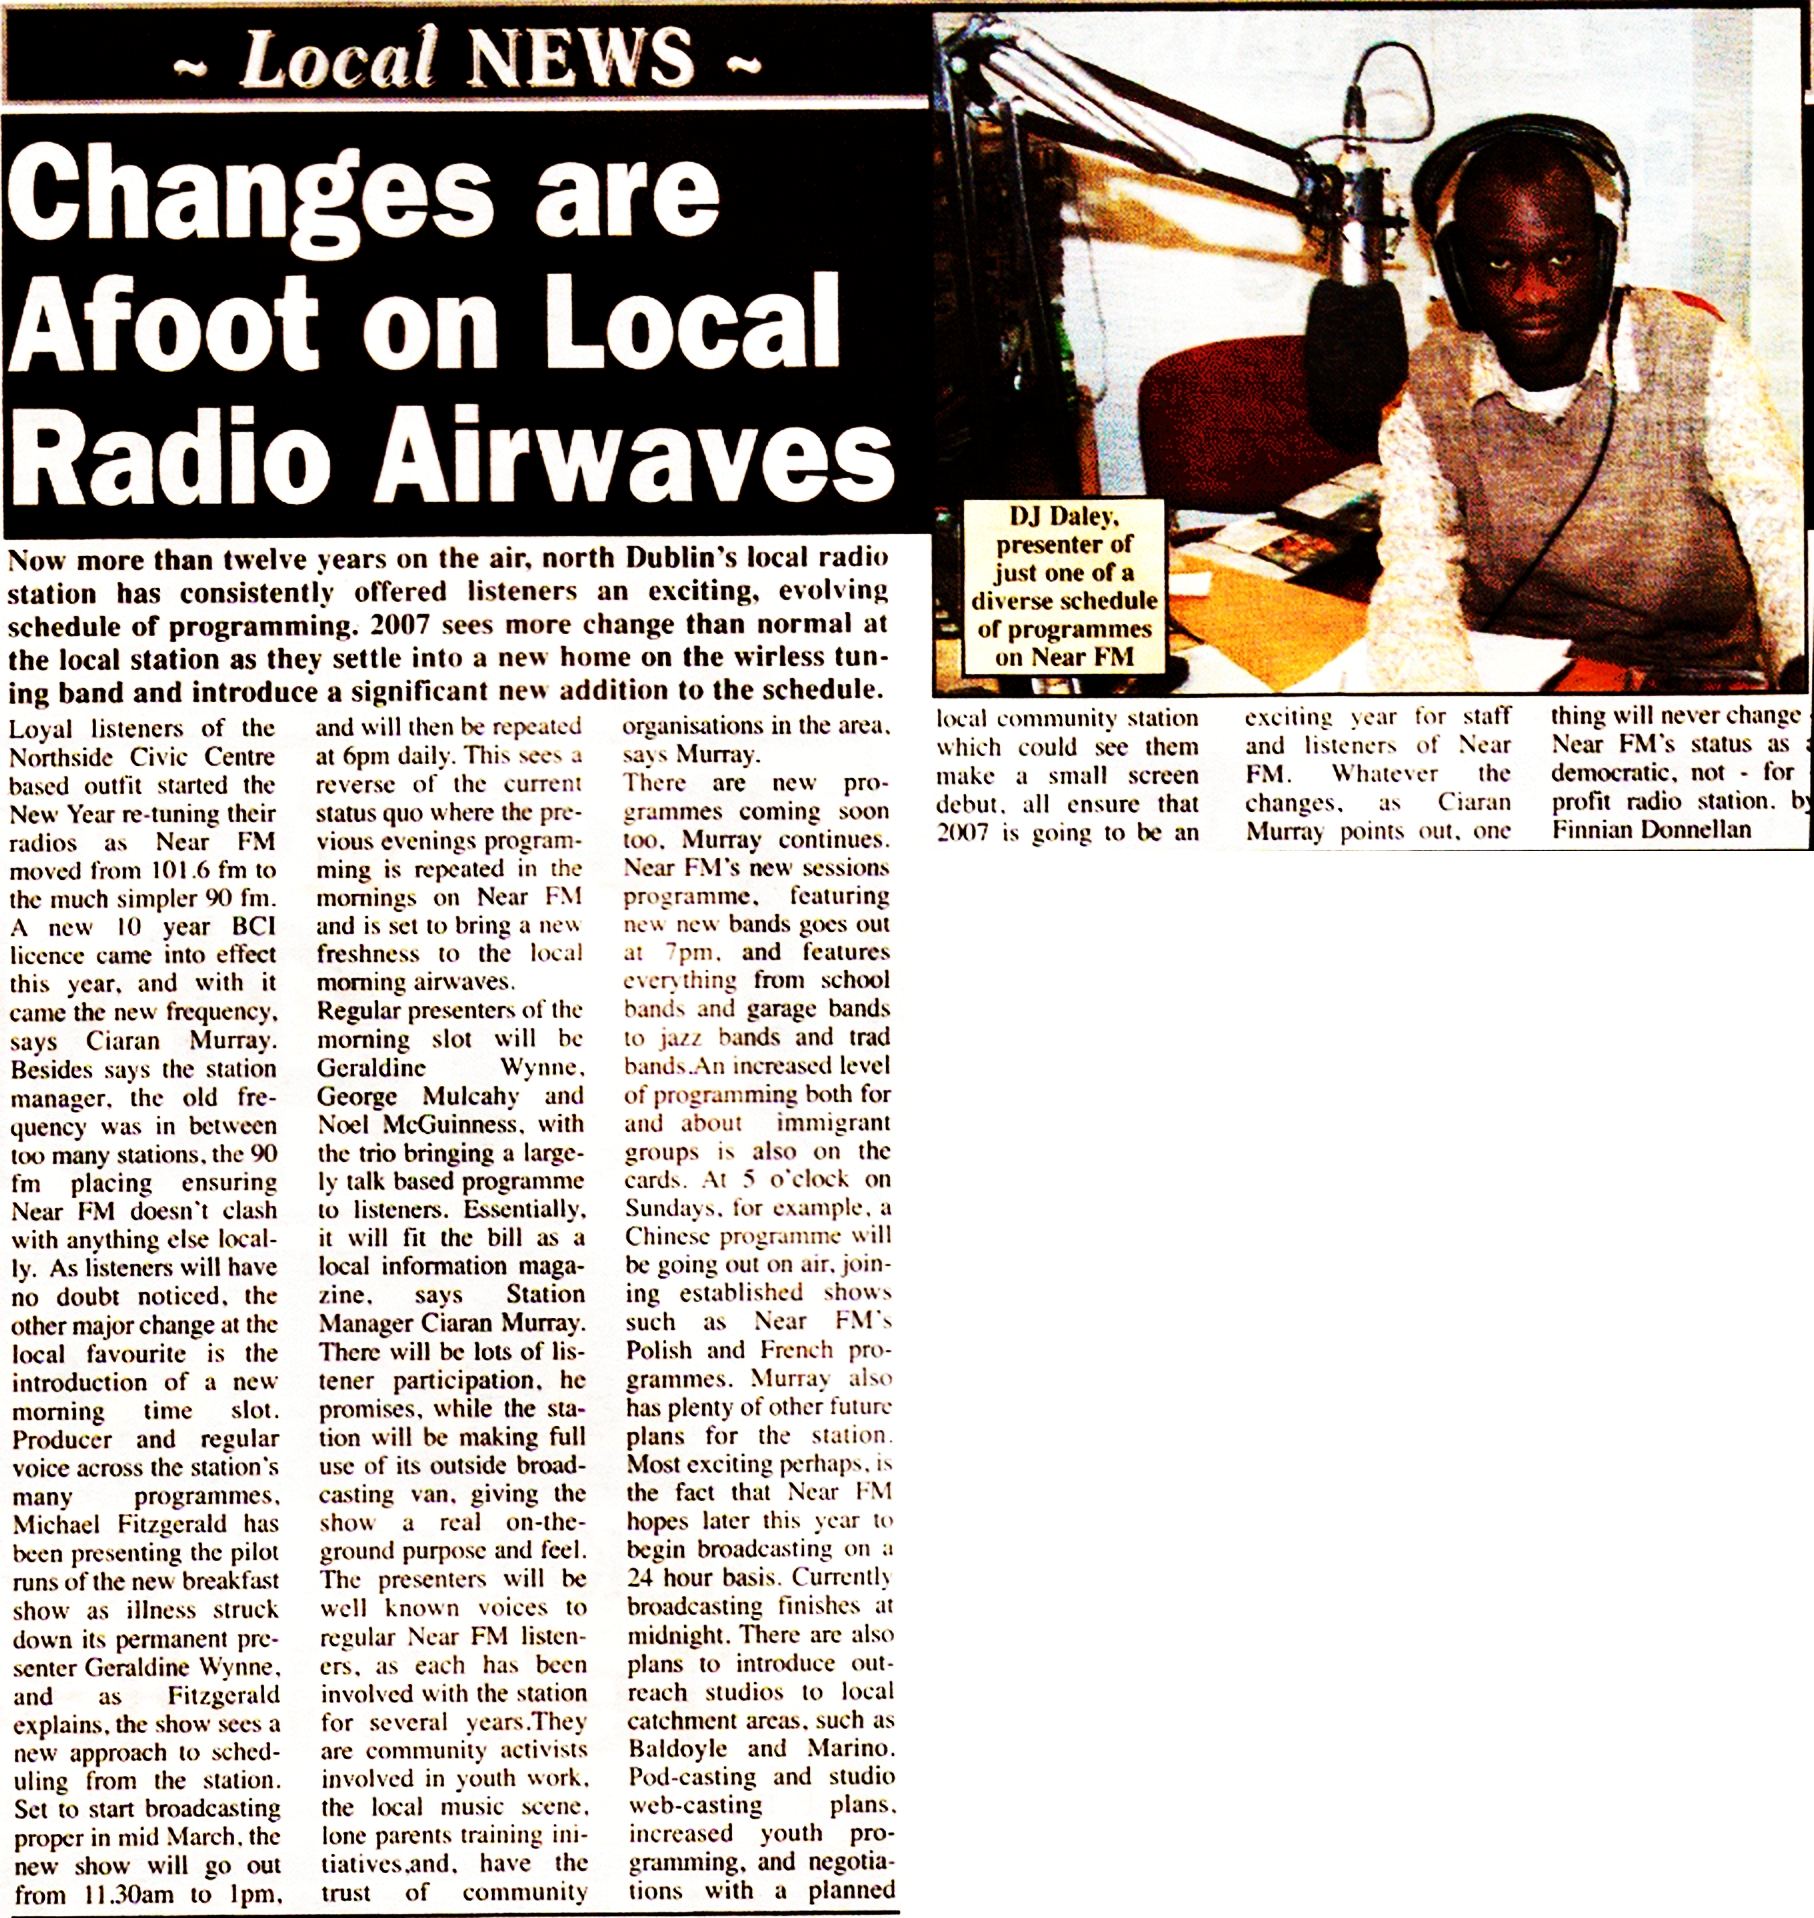 Citywide News - Changes are afoot on local radio airwaves